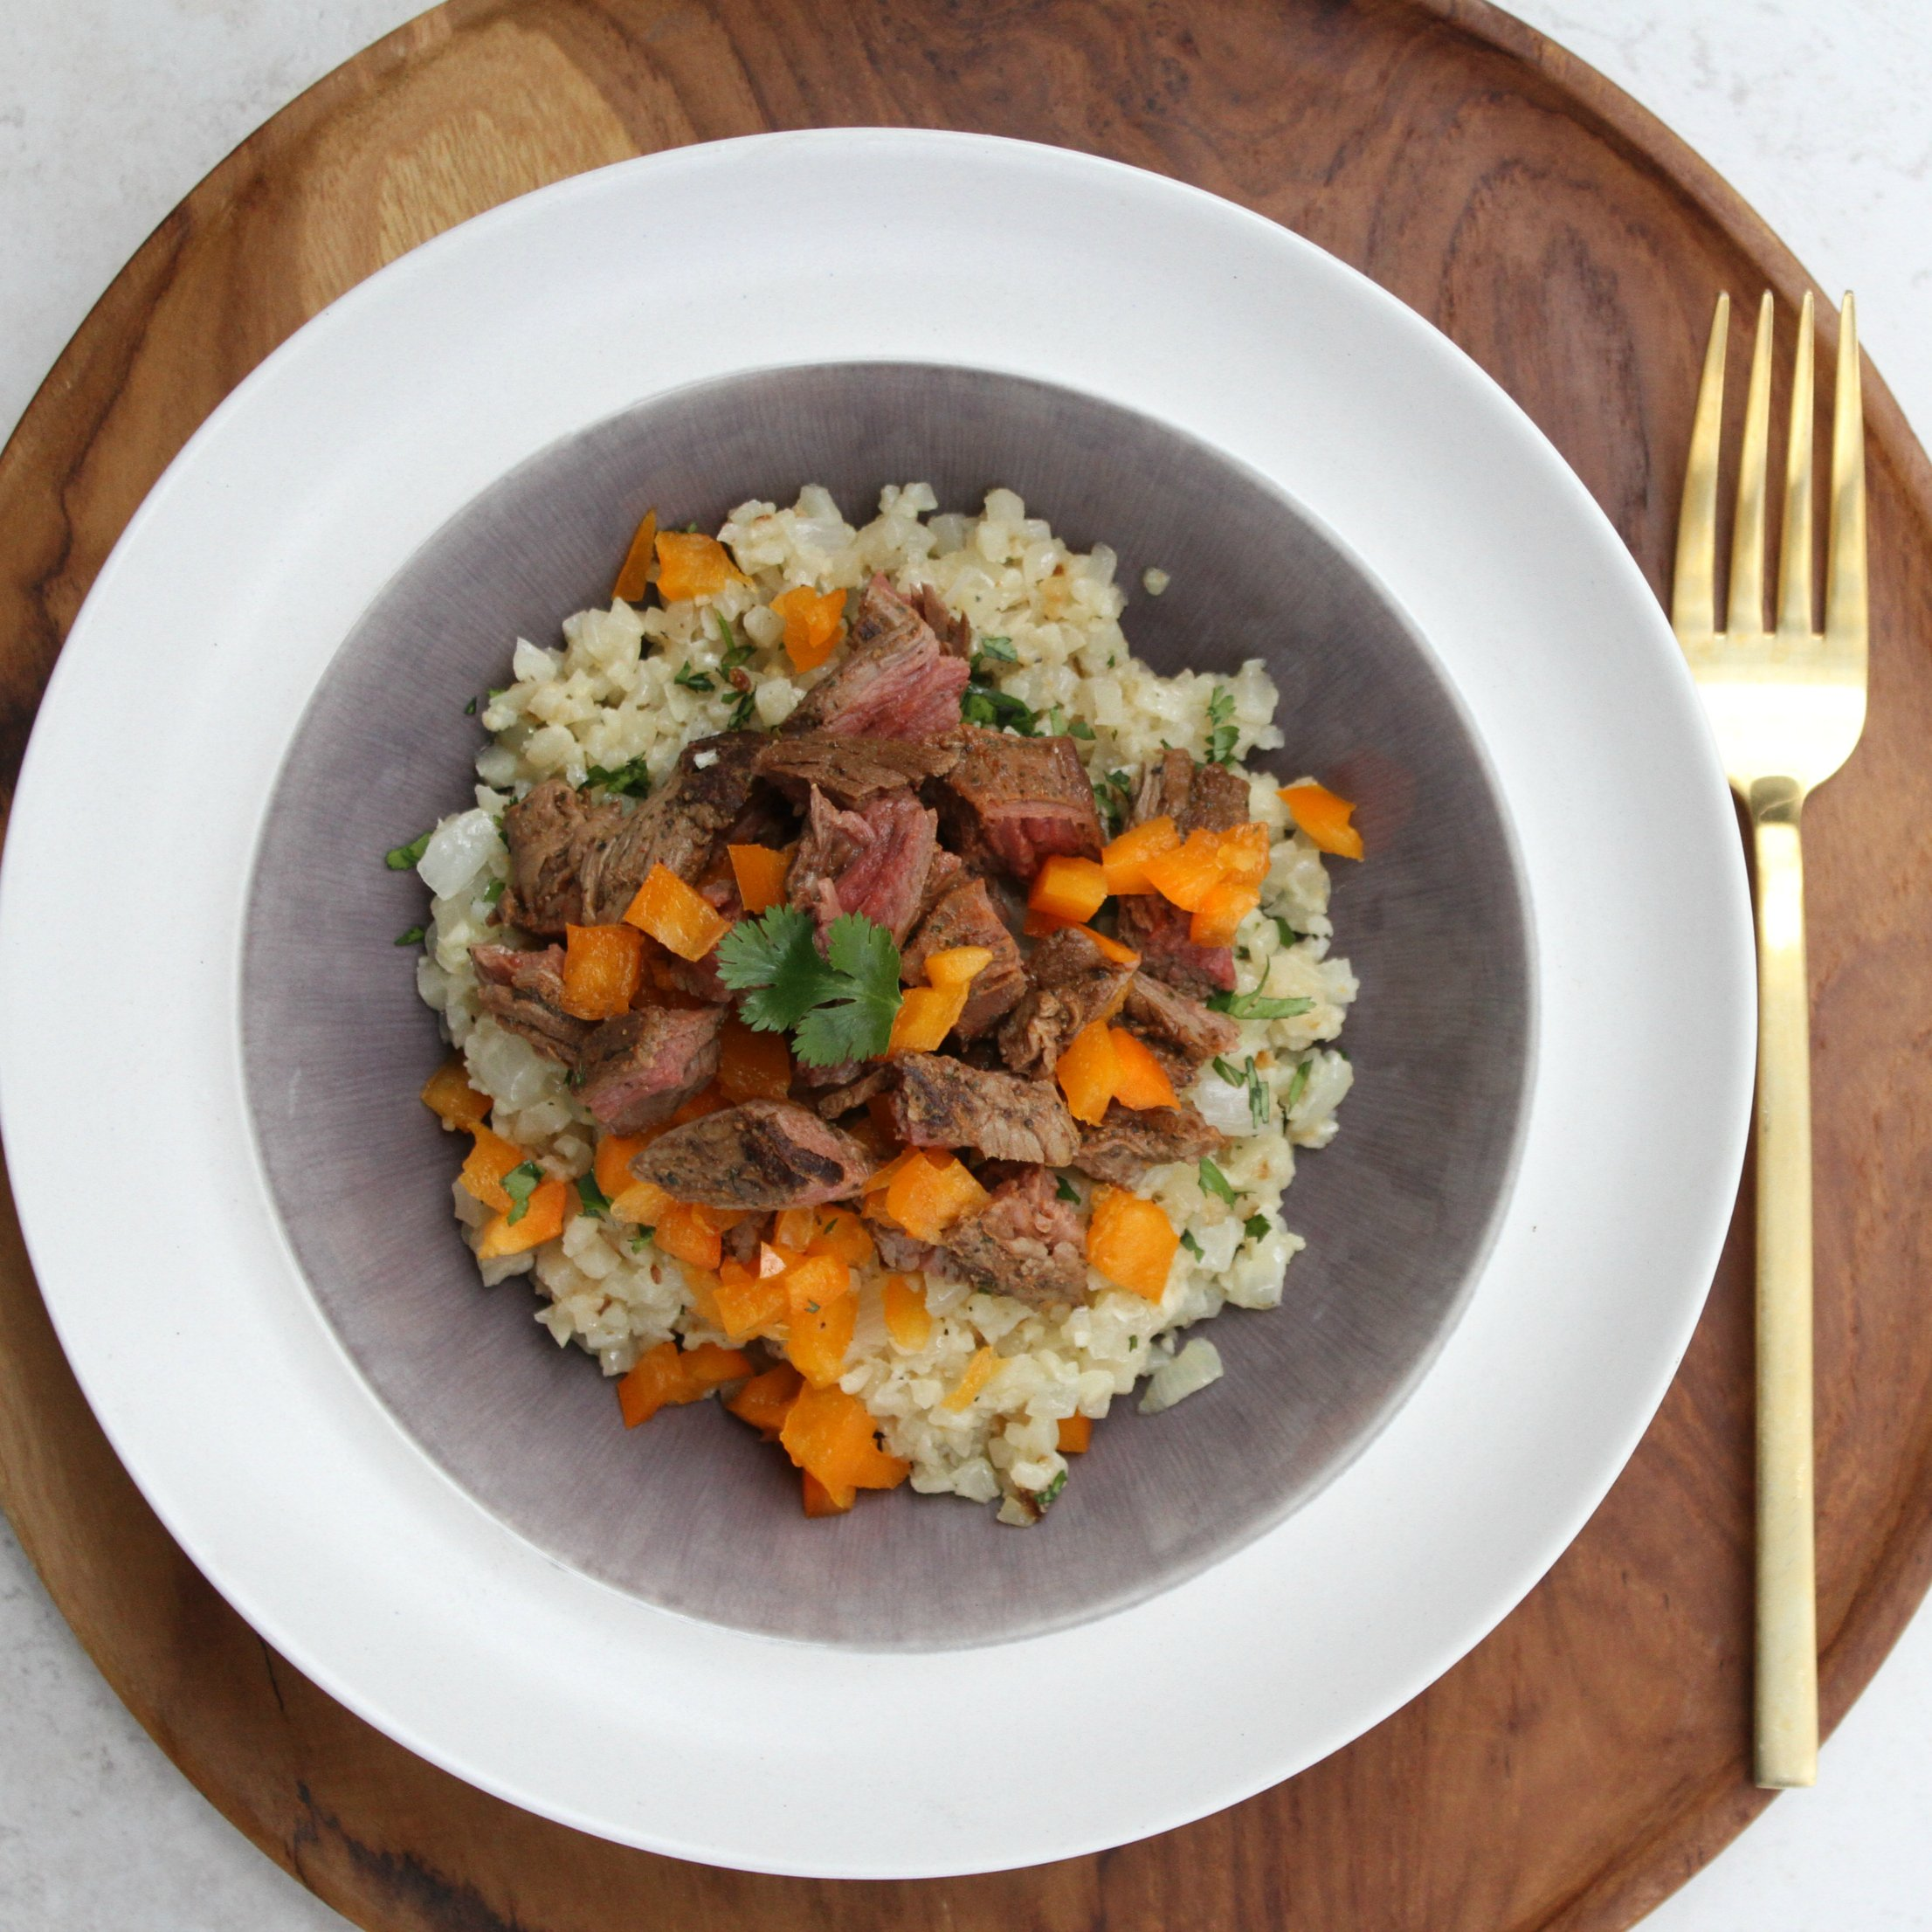 Pete's Paleo Meals, 3 Servings, Cauliflower Rice Dinners